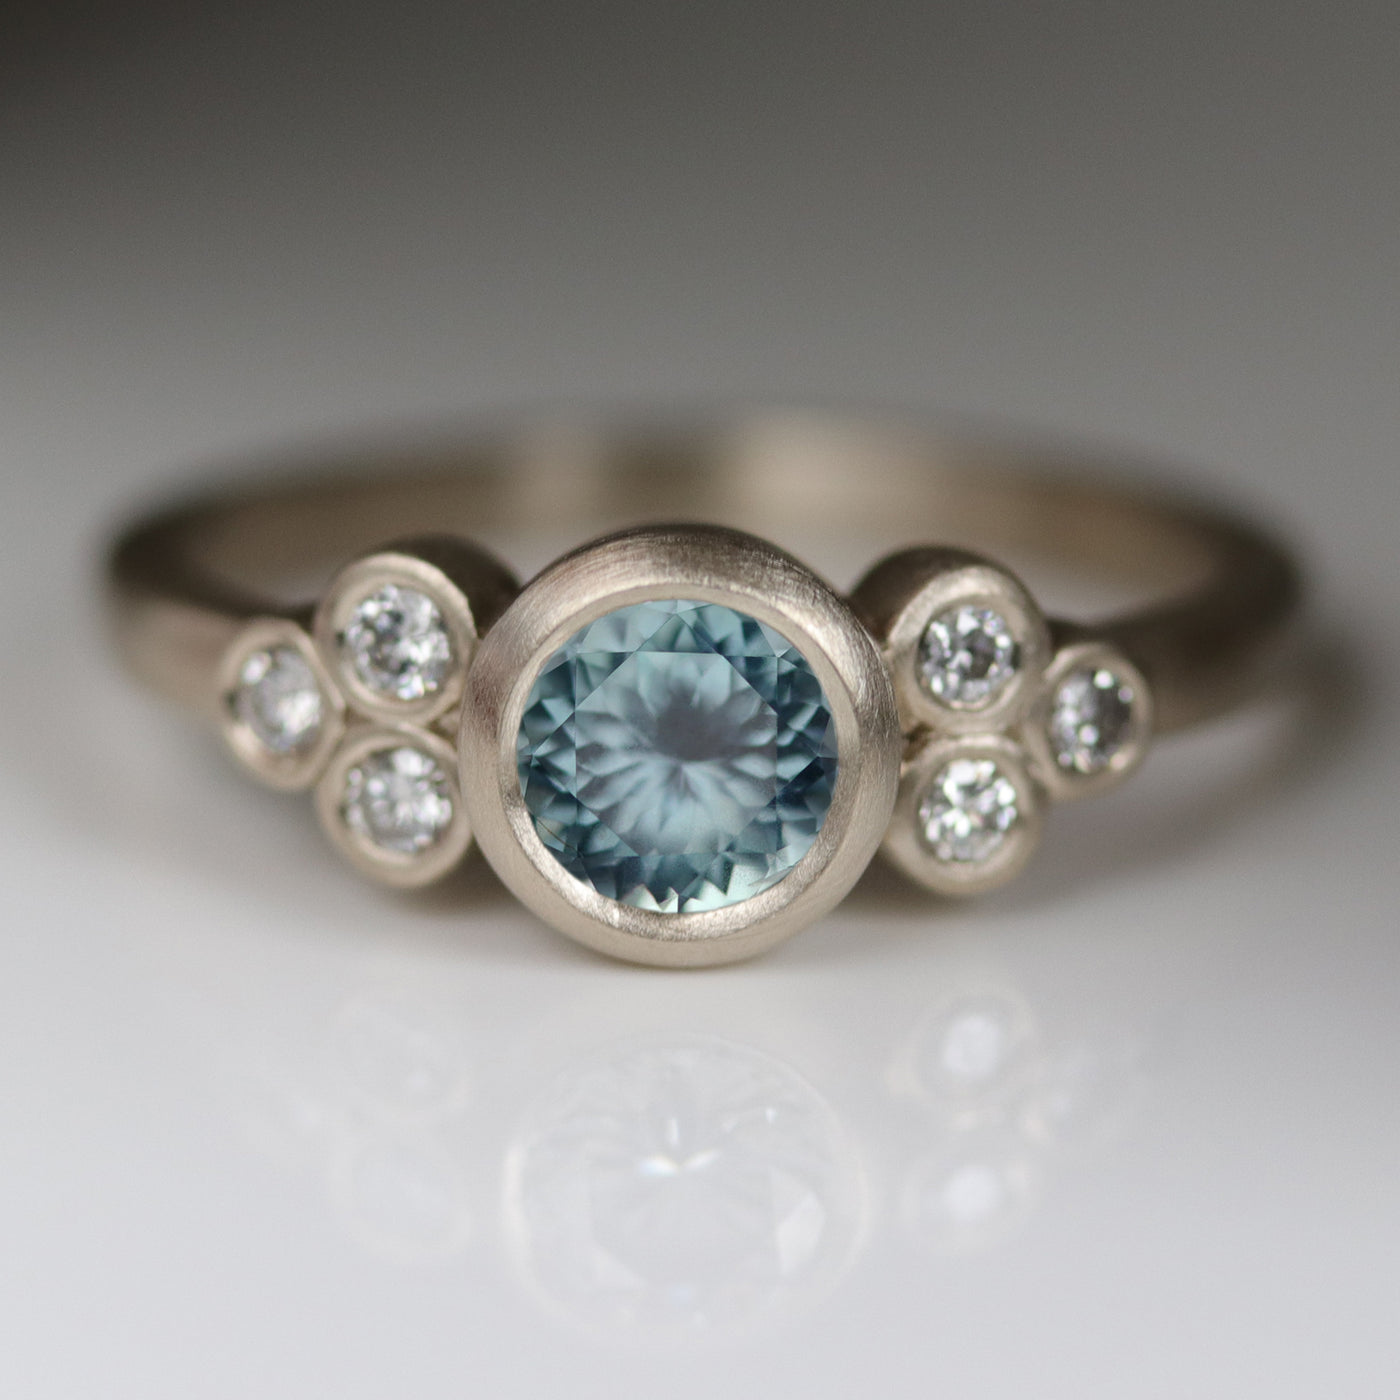 Seven Stone Cluster Ring with Montana Sapphire Center Stone